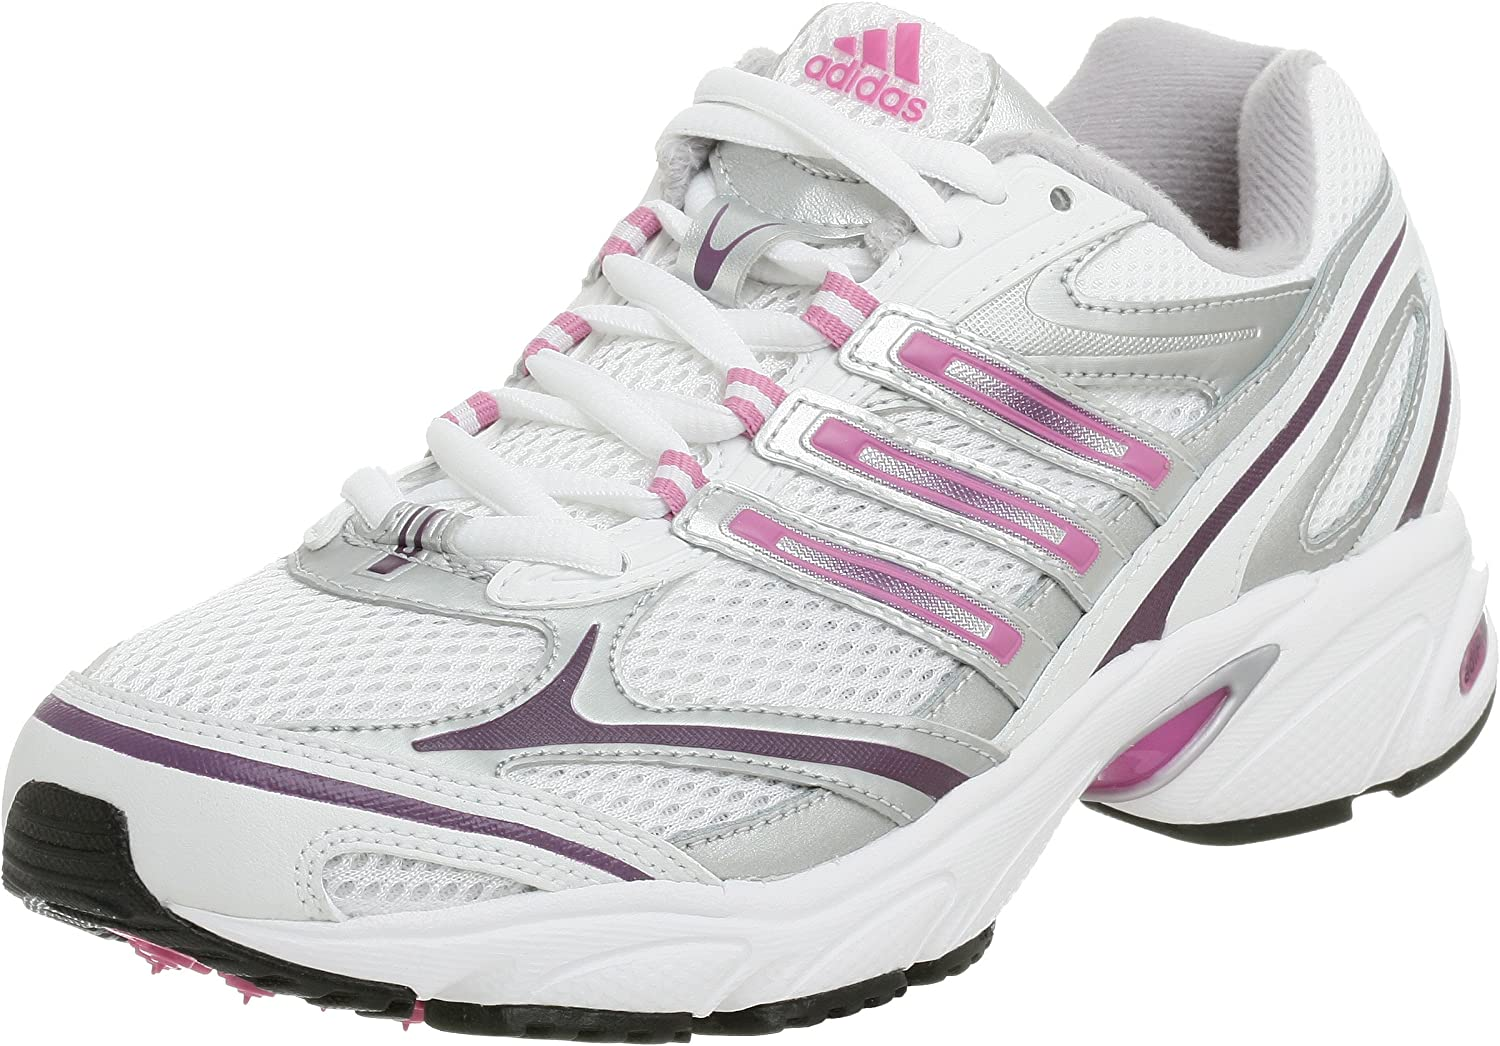 Reebok Women s Plus LITE HB Track Shoe